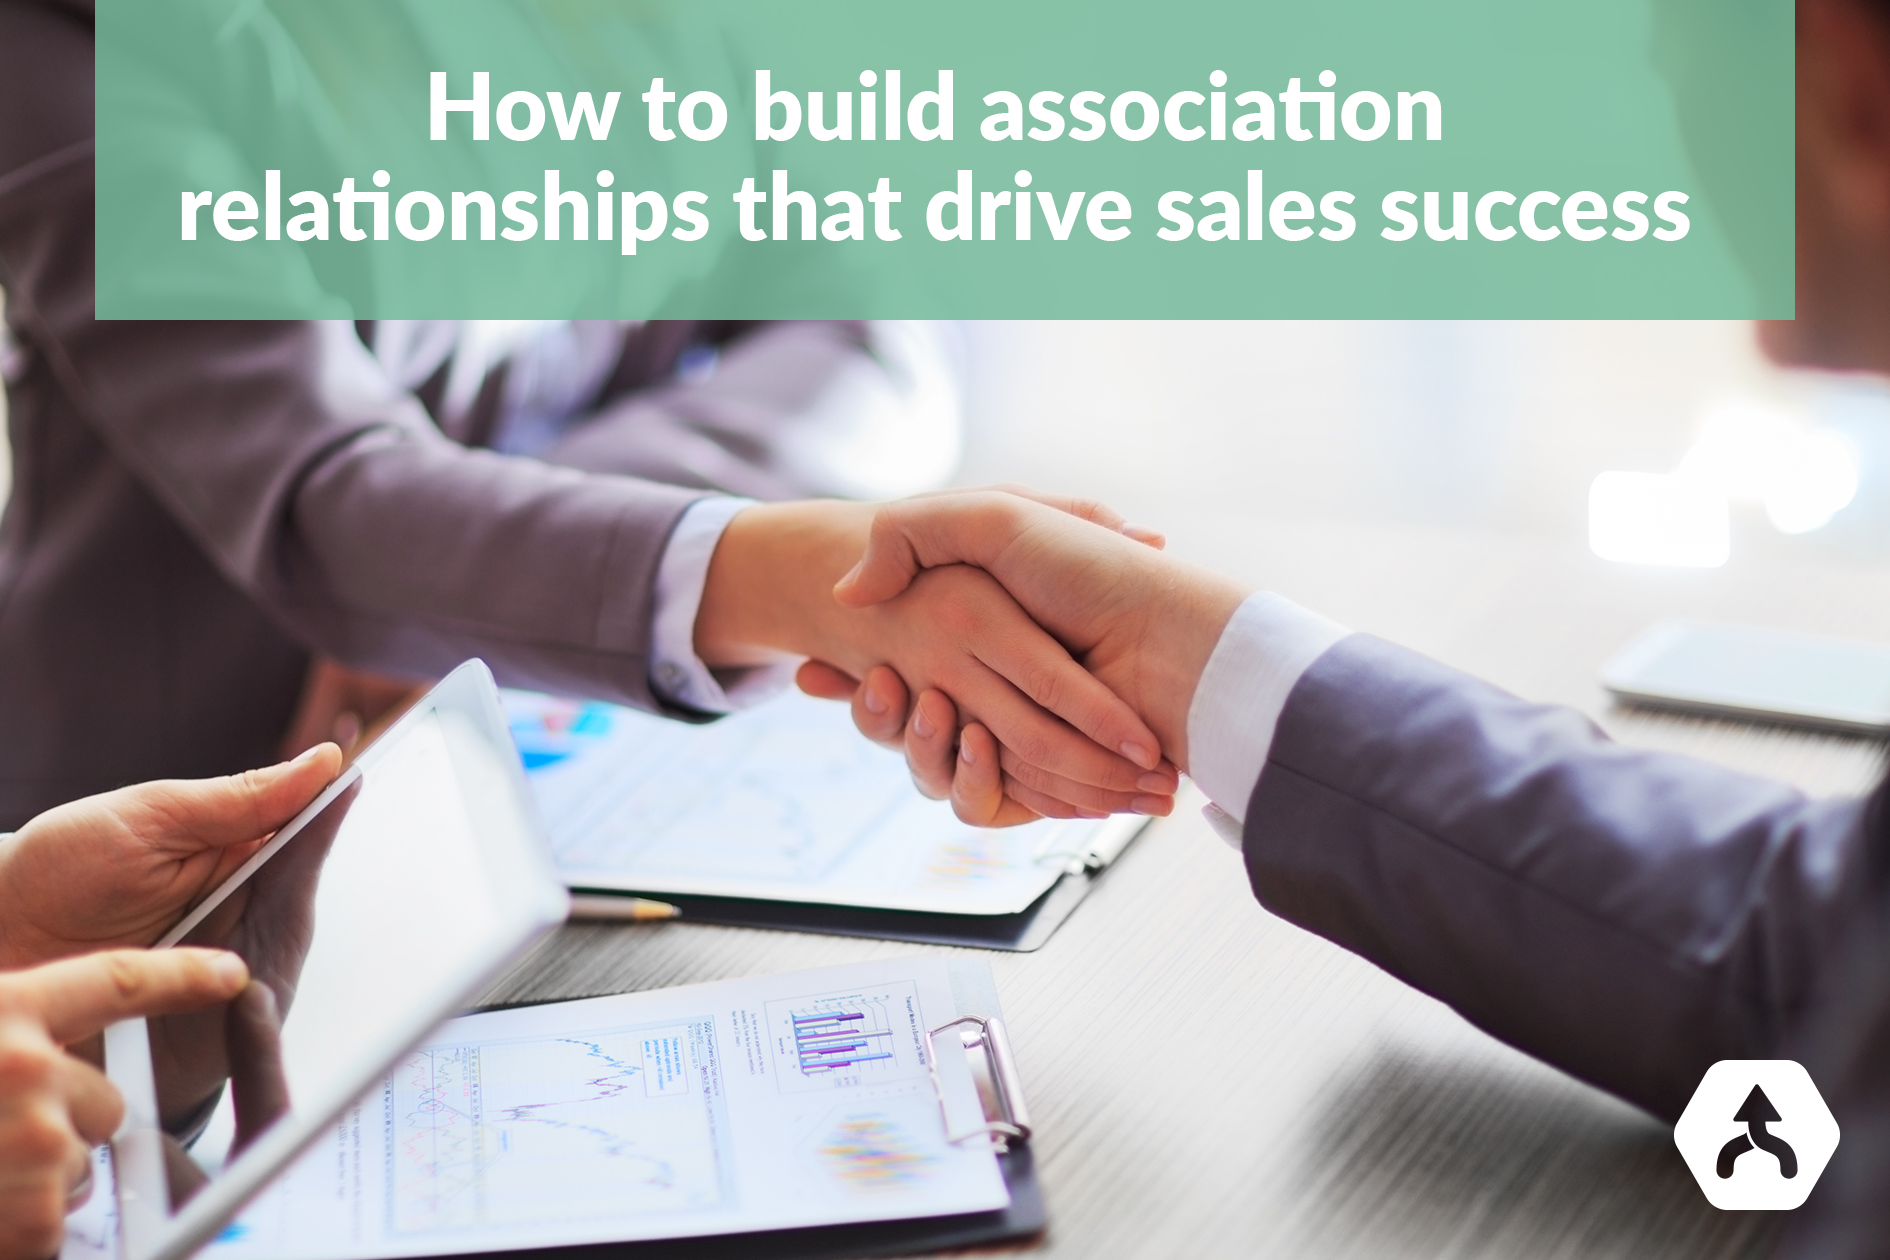 How to build association relationships that drive sales success